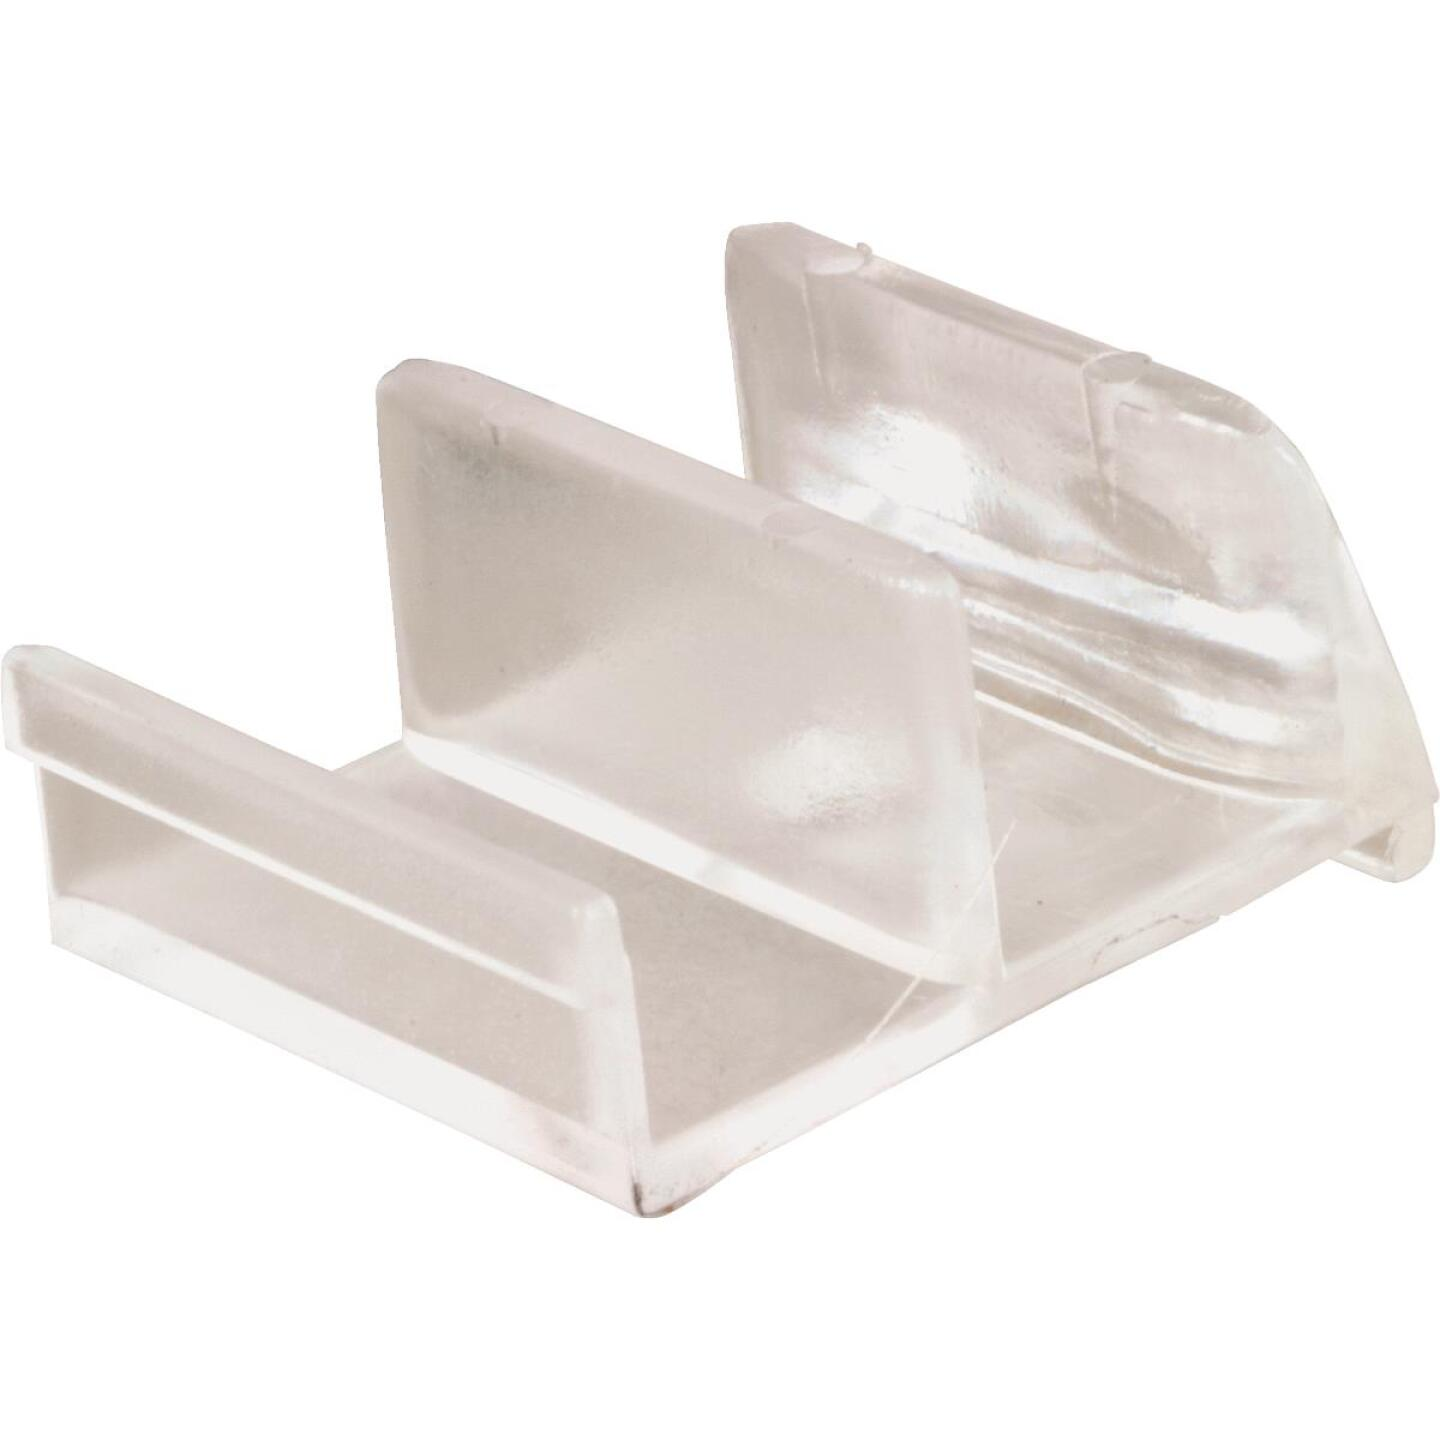 Prime-Line Clear Tub & Shower Enclosure Bottom Guide (2 Count) Image 1